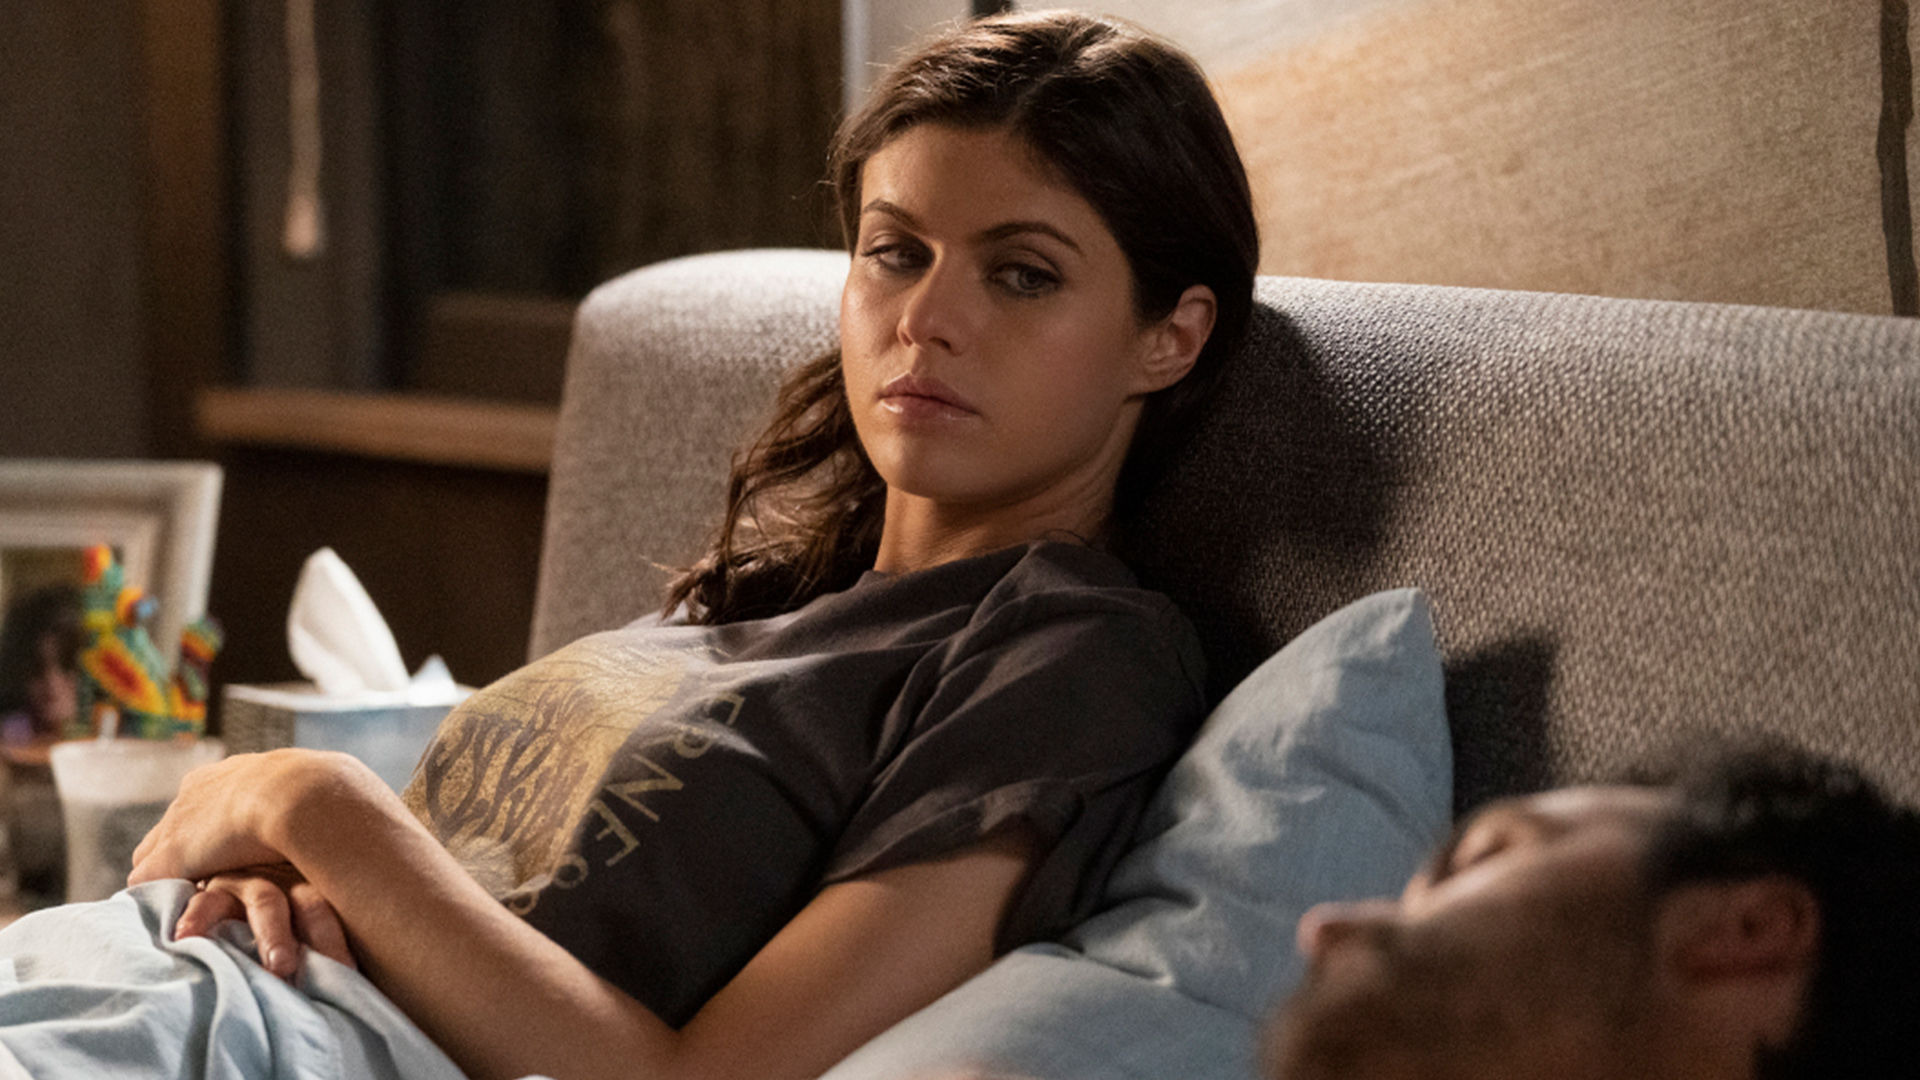 Почему женщины убивают — s01e08 — Marriages Don't Break Up on Account of Murder - It's Just a Symptom That Something Else Is Wrong